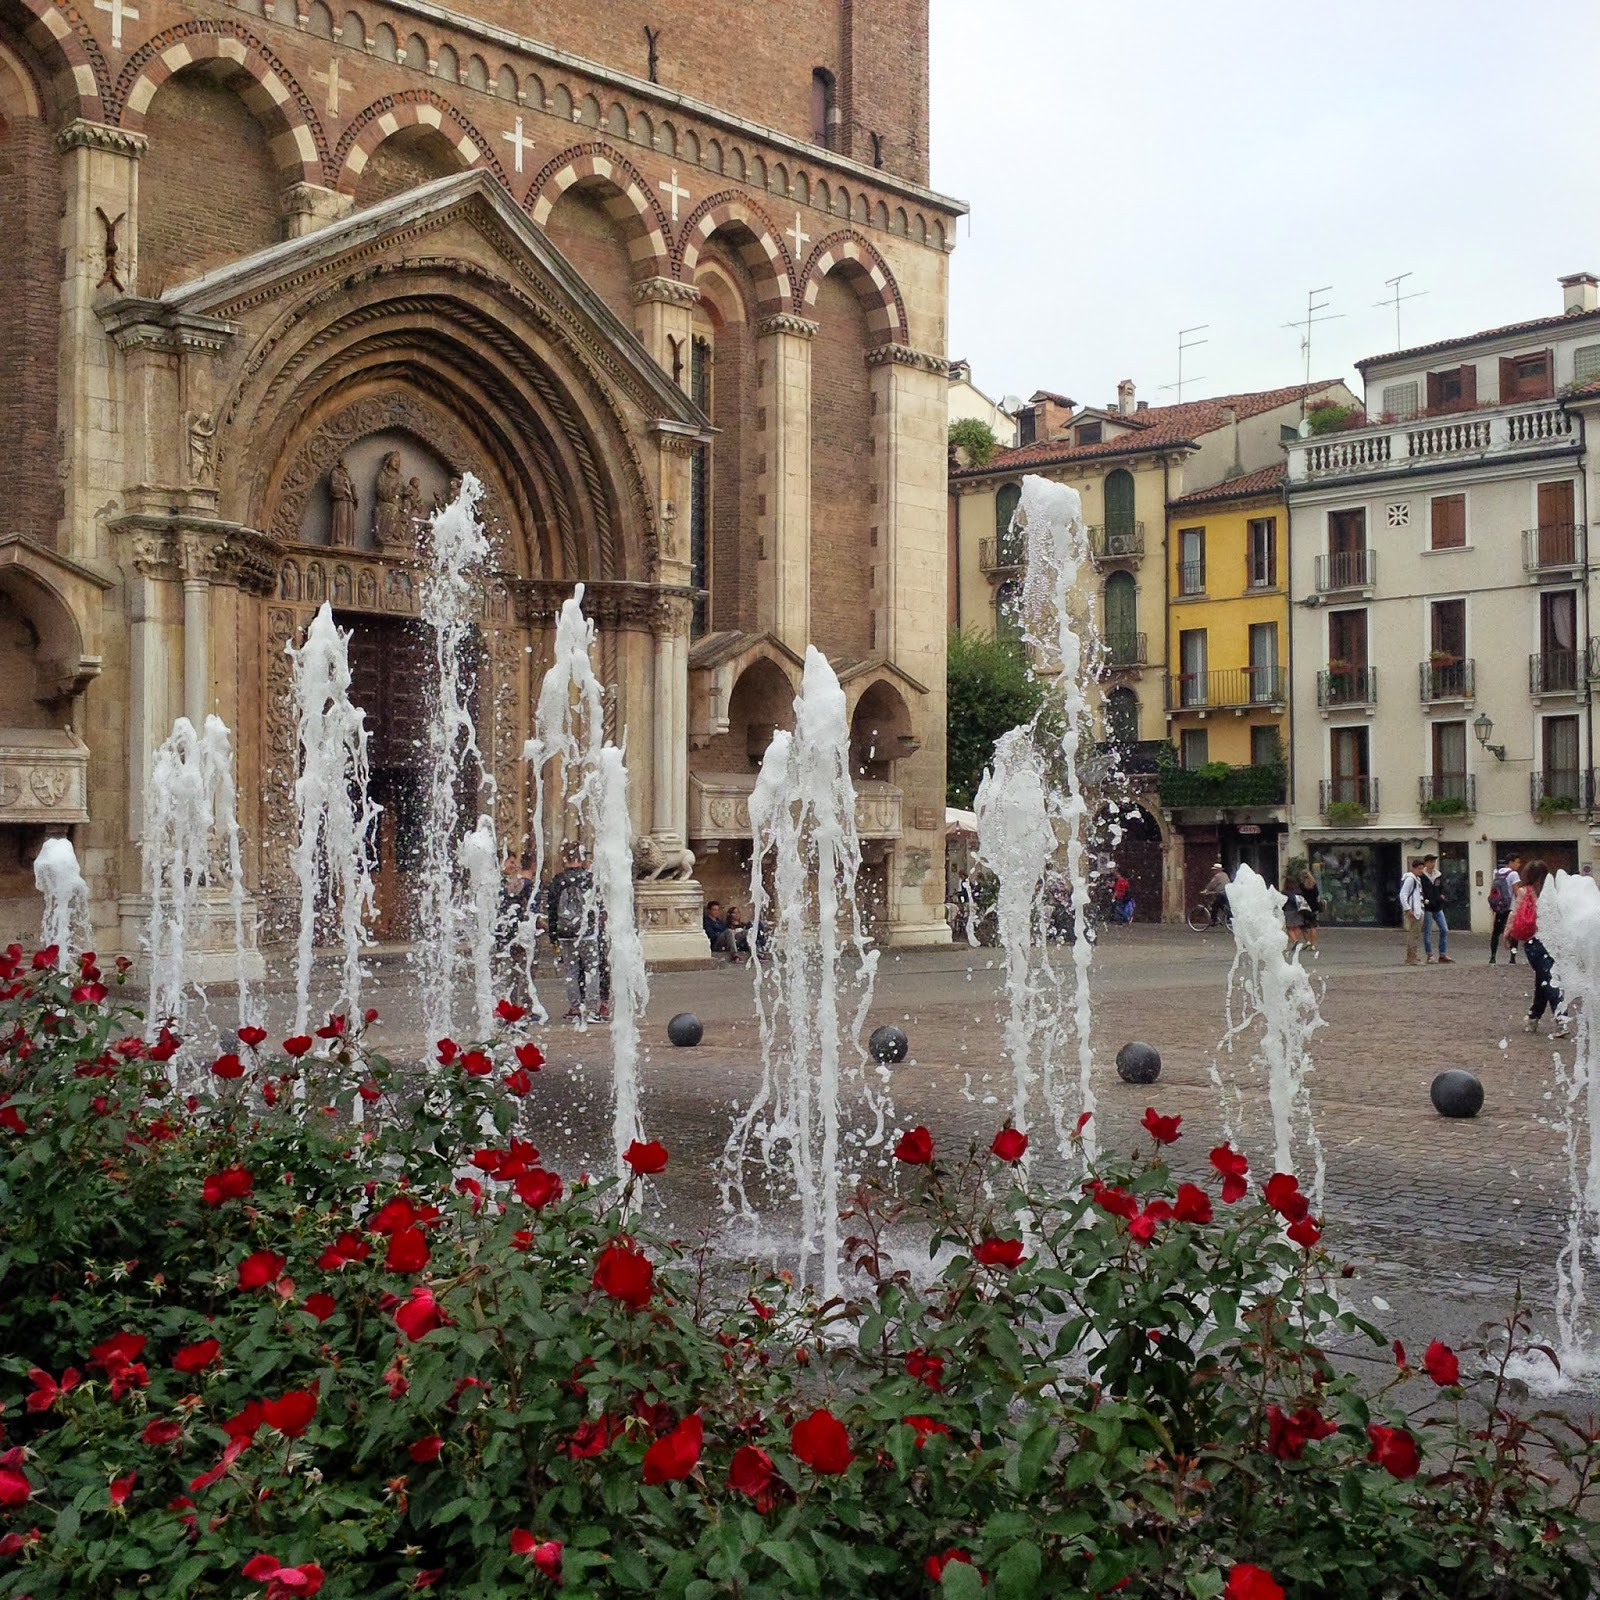 The water feature in front of the church of San Lorenzo in Vicenza